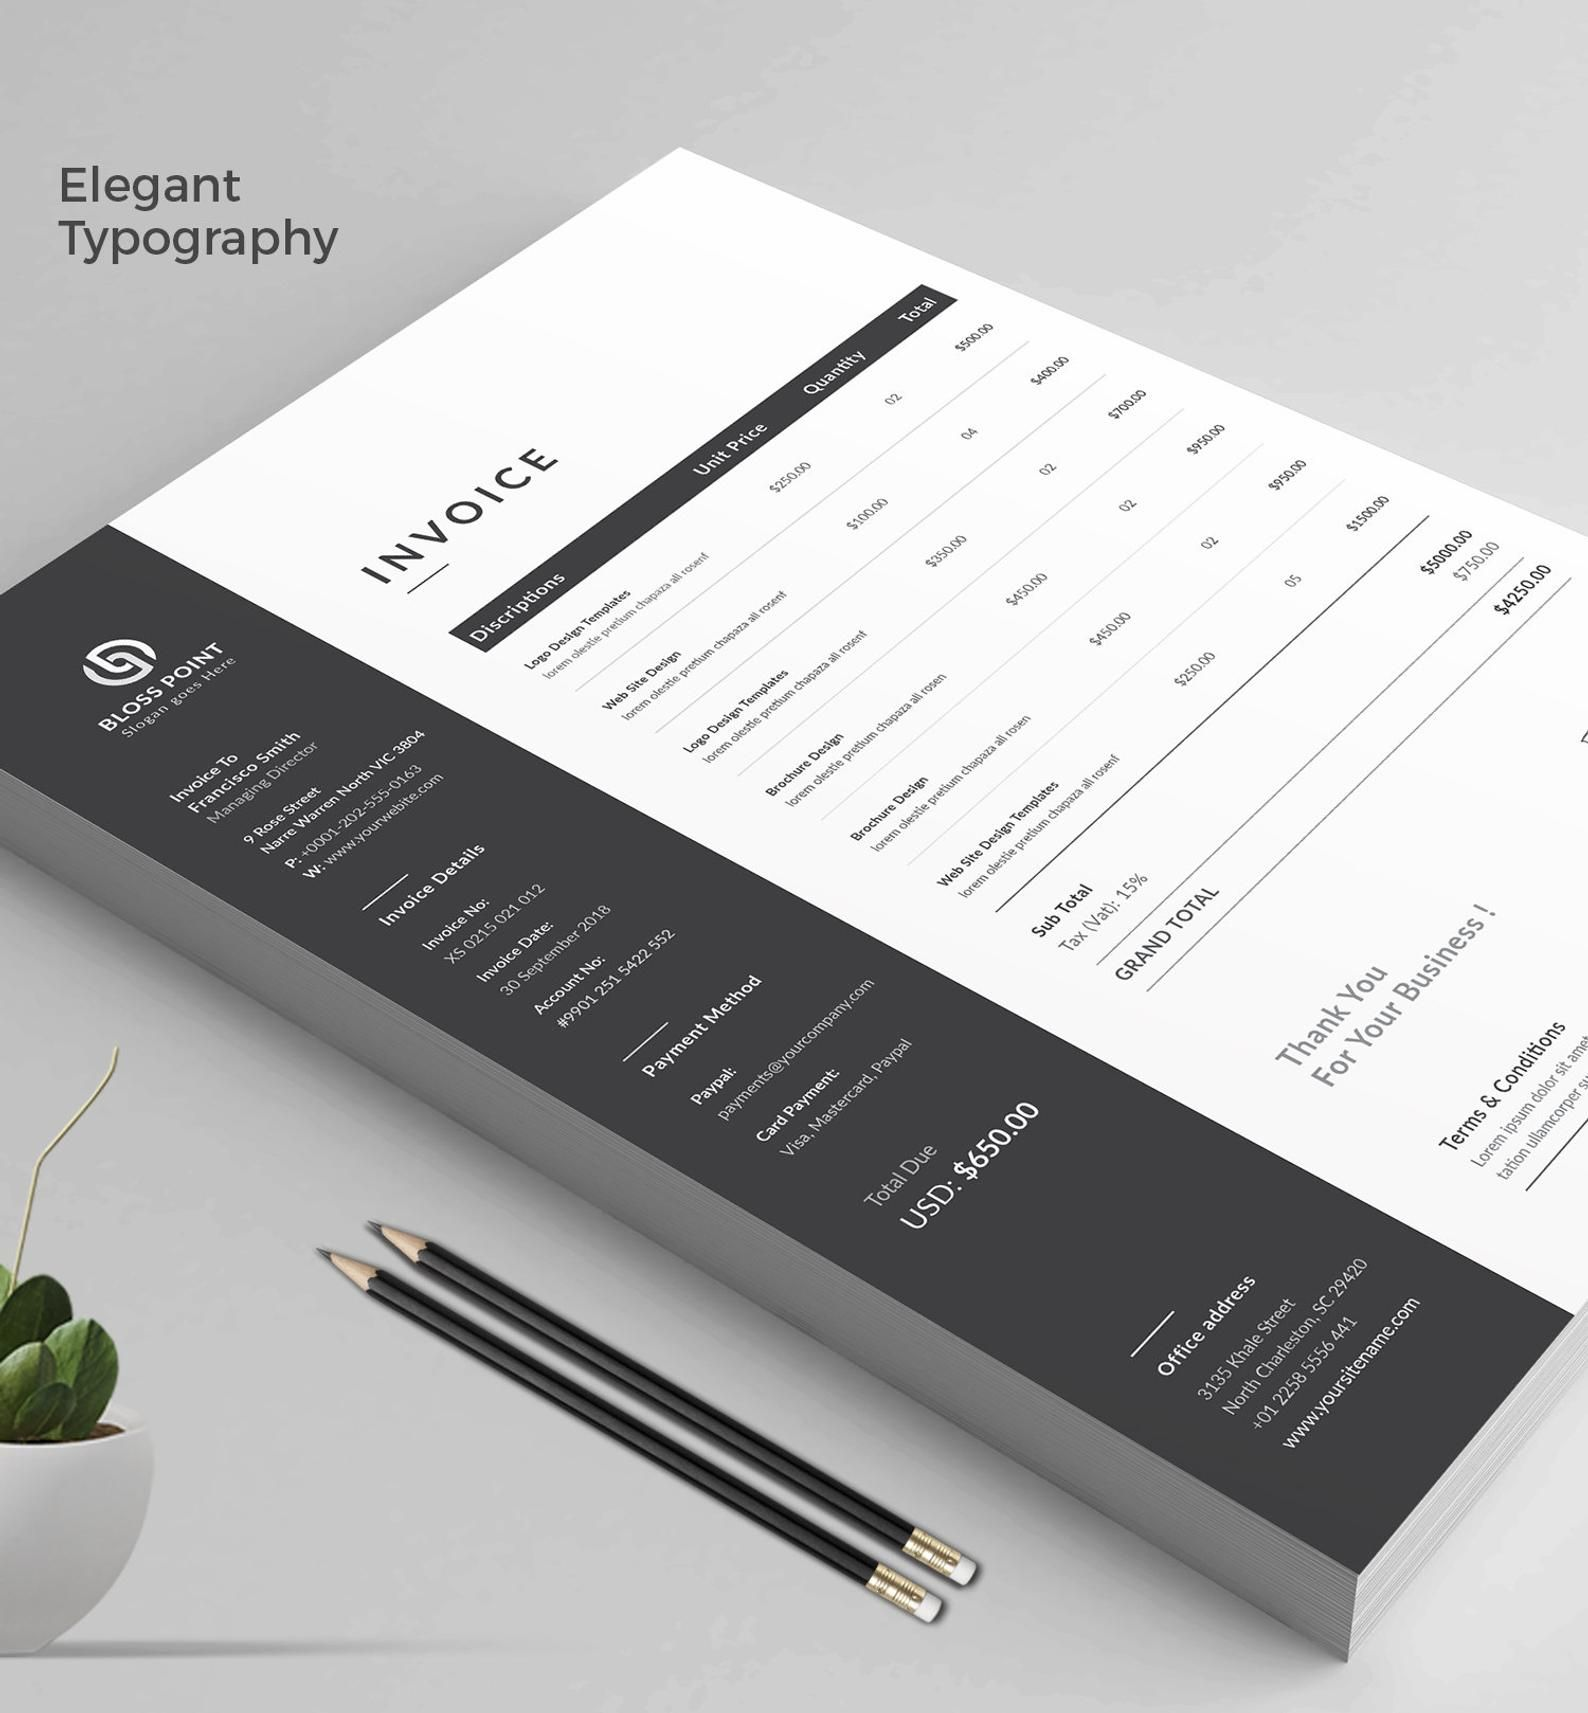 Invoice Template Invoice Design Ms Excel Auto Calculation Features Receipt Word Invoice Photography Invoice Business Invoice In 2020 Invoice Design Photography Invoice Invoice Template